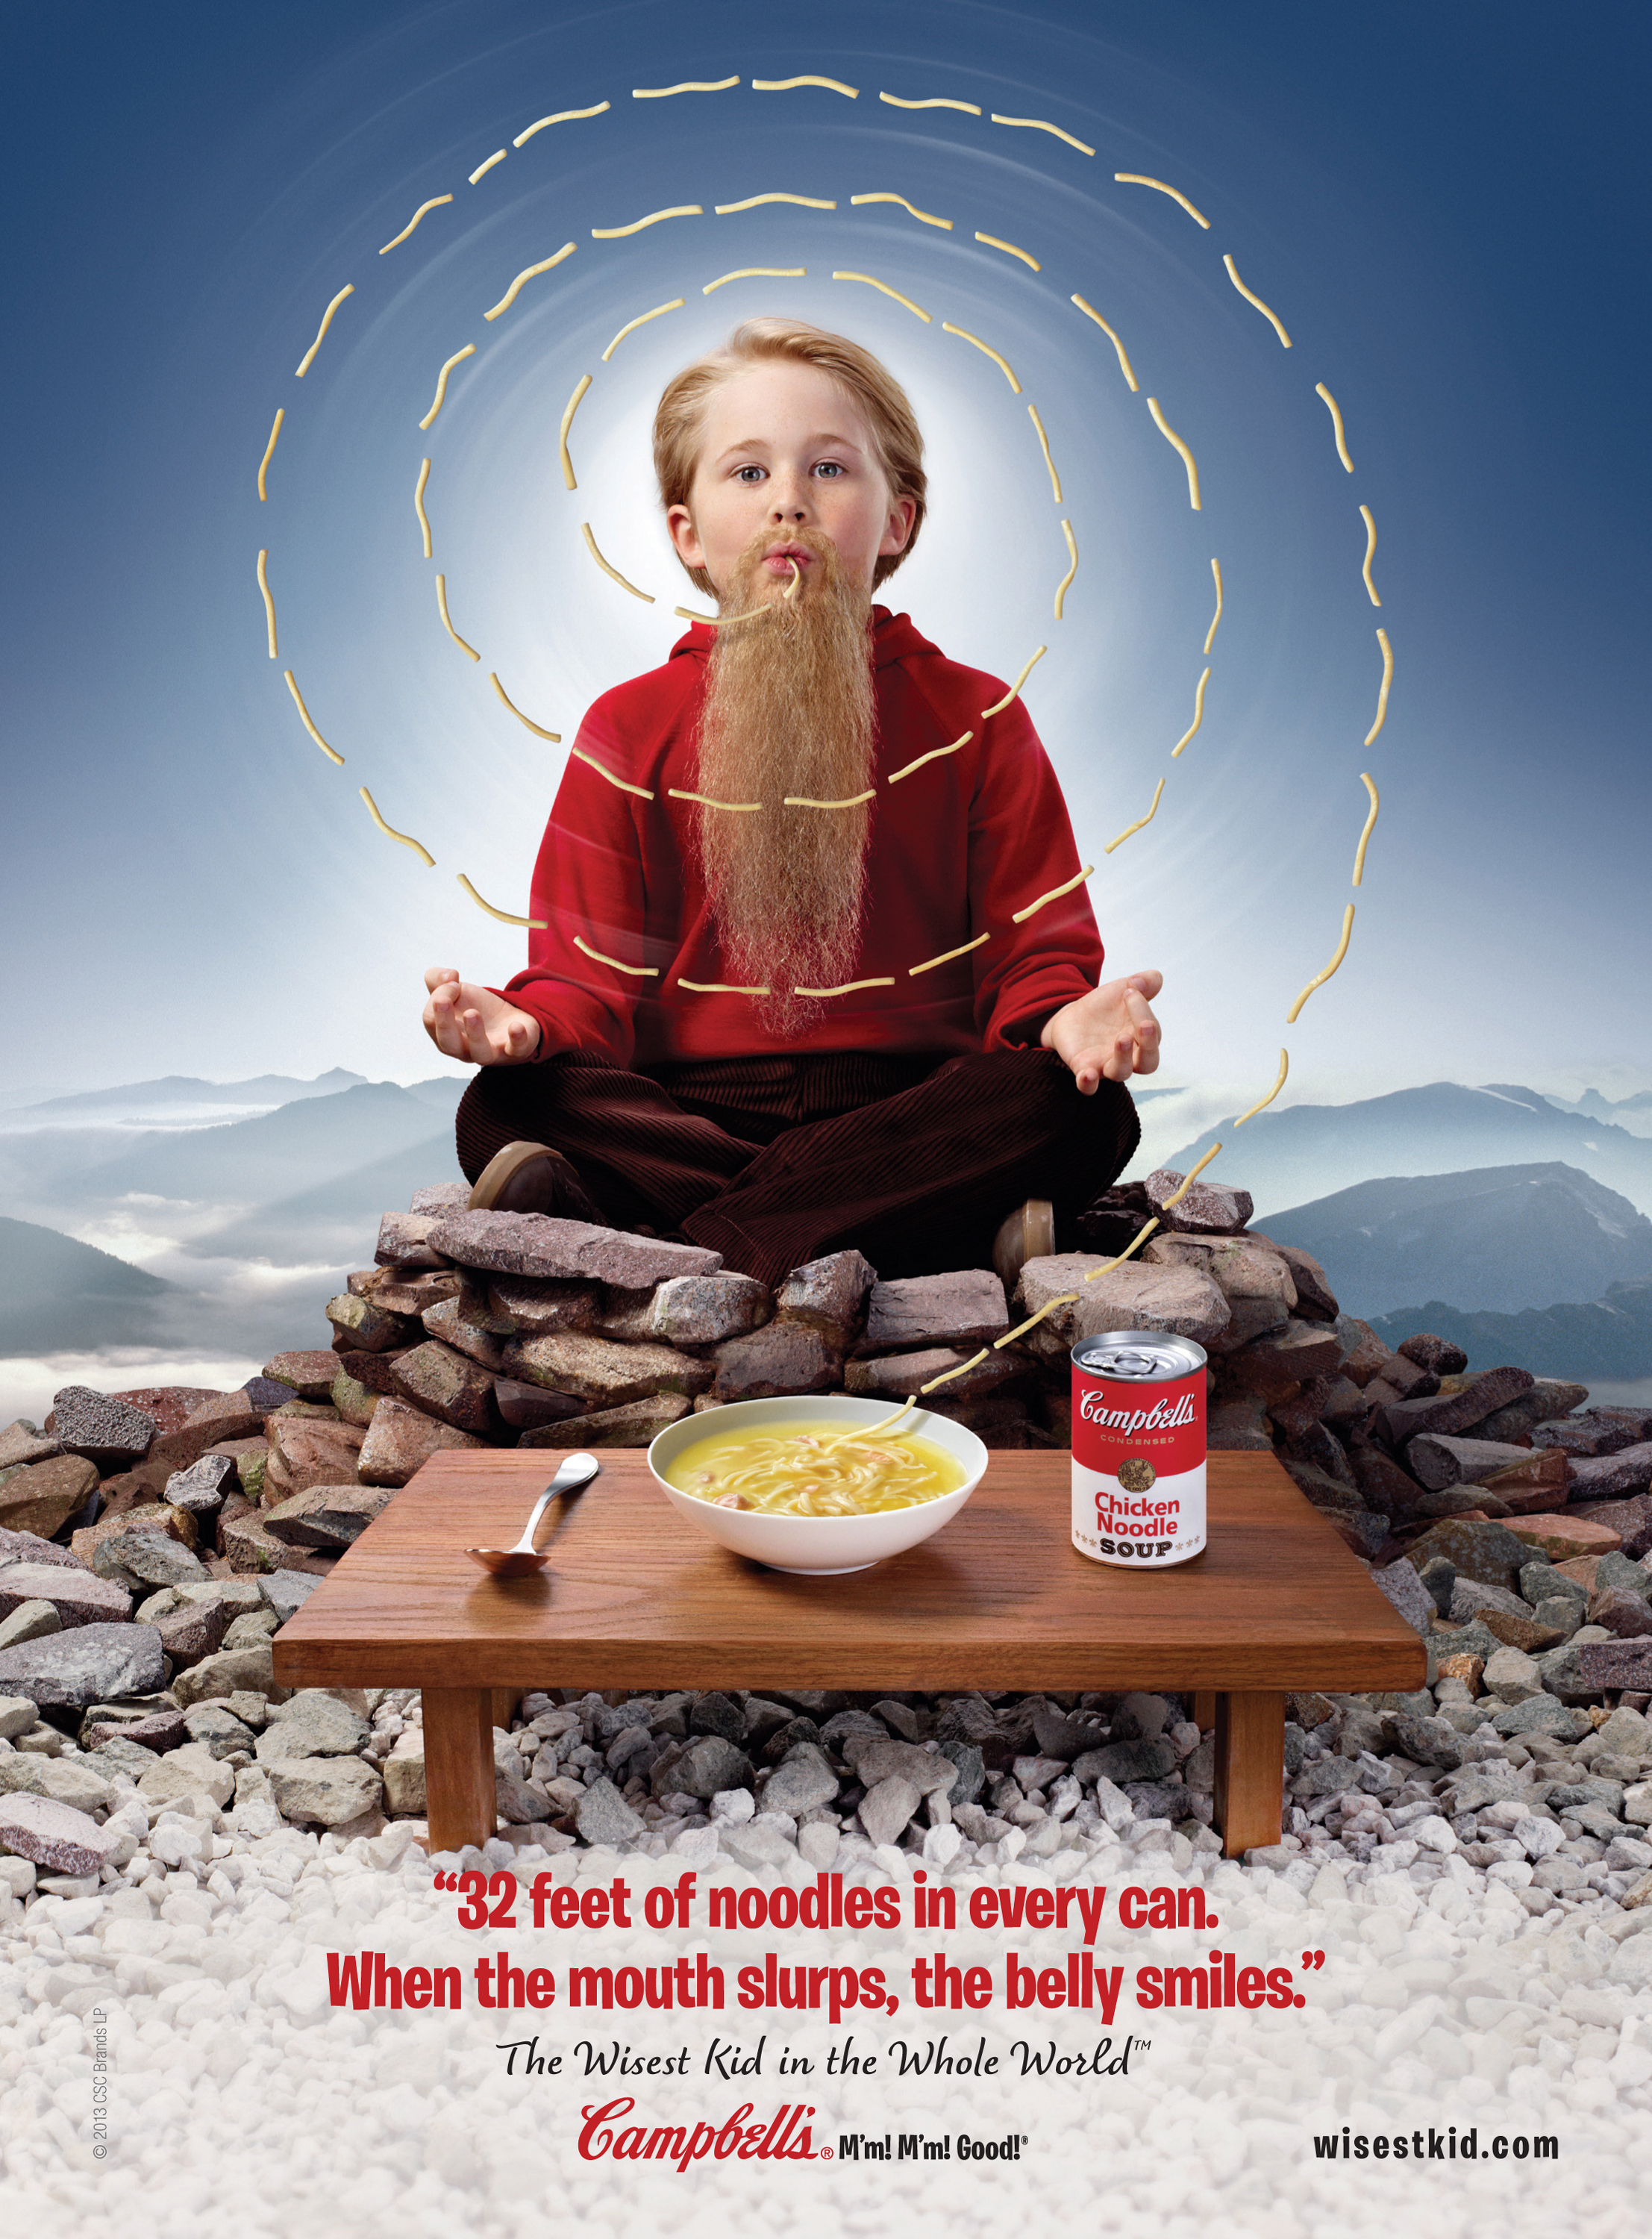 """Campbell Soup Company (NYSE:CPB) today announced that it has """"discovered"""" The Wisest Kid in the Whole World(TM), an eternally eight-year-old boy who embodies the collective wisdom of kids everywhere. (Photo: Business Wire)"""